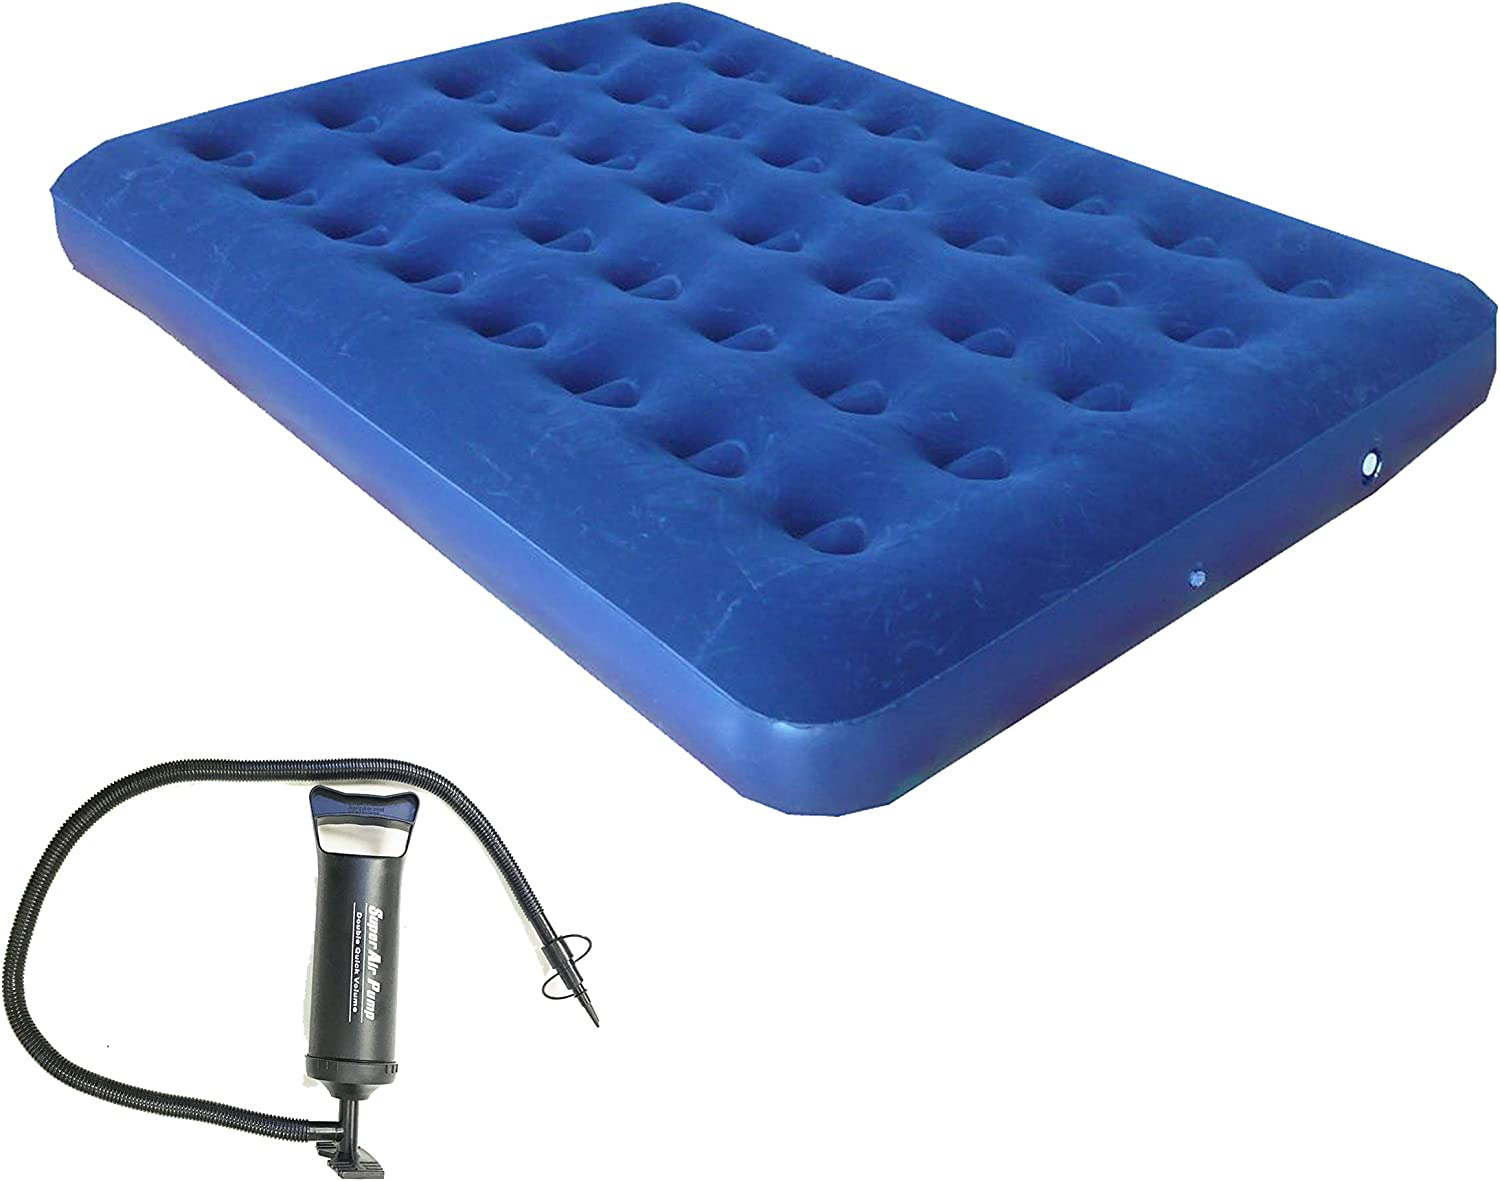 Zaltana Twin Size Air Mattress with Double Action Hand Pump Including 3 valves